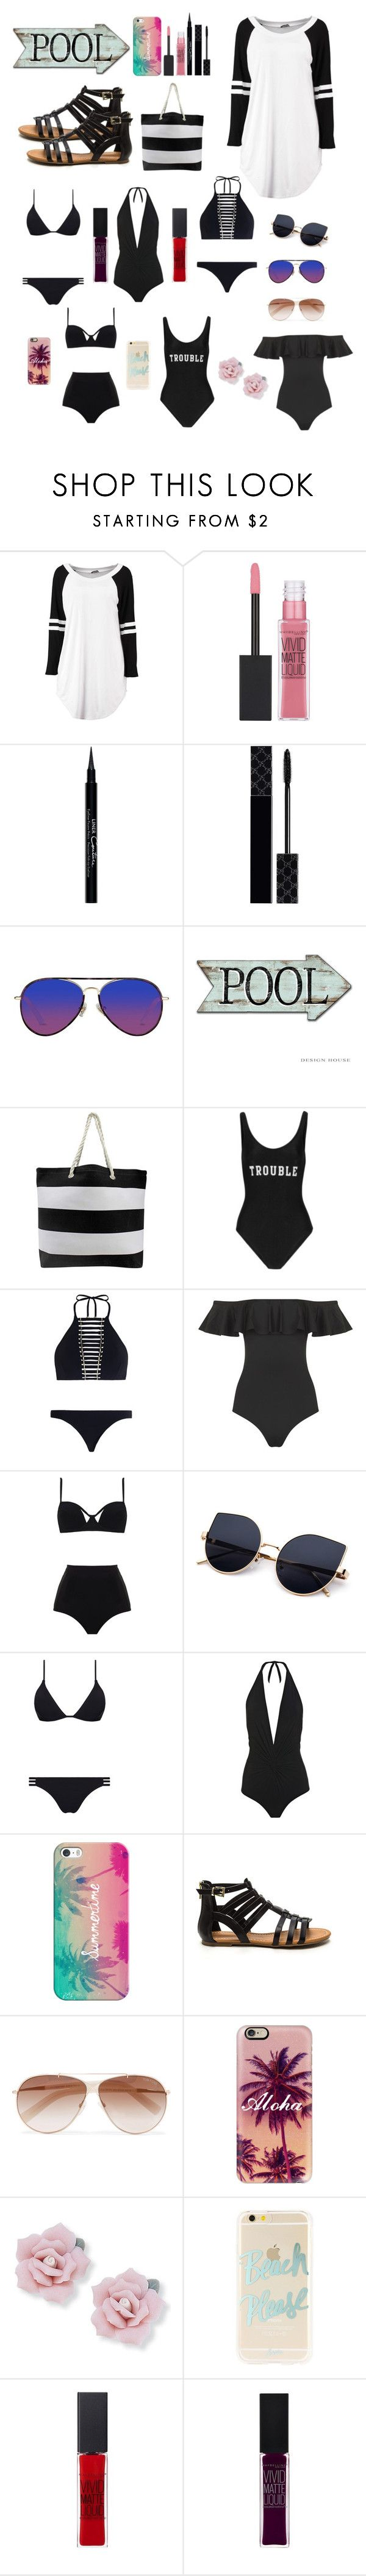 """""""Pool 👙🏊♀️"""" by fashion8-2016 ❤ liked on Polyvore featuring Maybelline, Givenchy, Gucci, Matthew Williamson, ADRIANA DEGREAS, Zimmermann, Topshop, MOEVA, Melissa Odabash and Karla Colletto"""